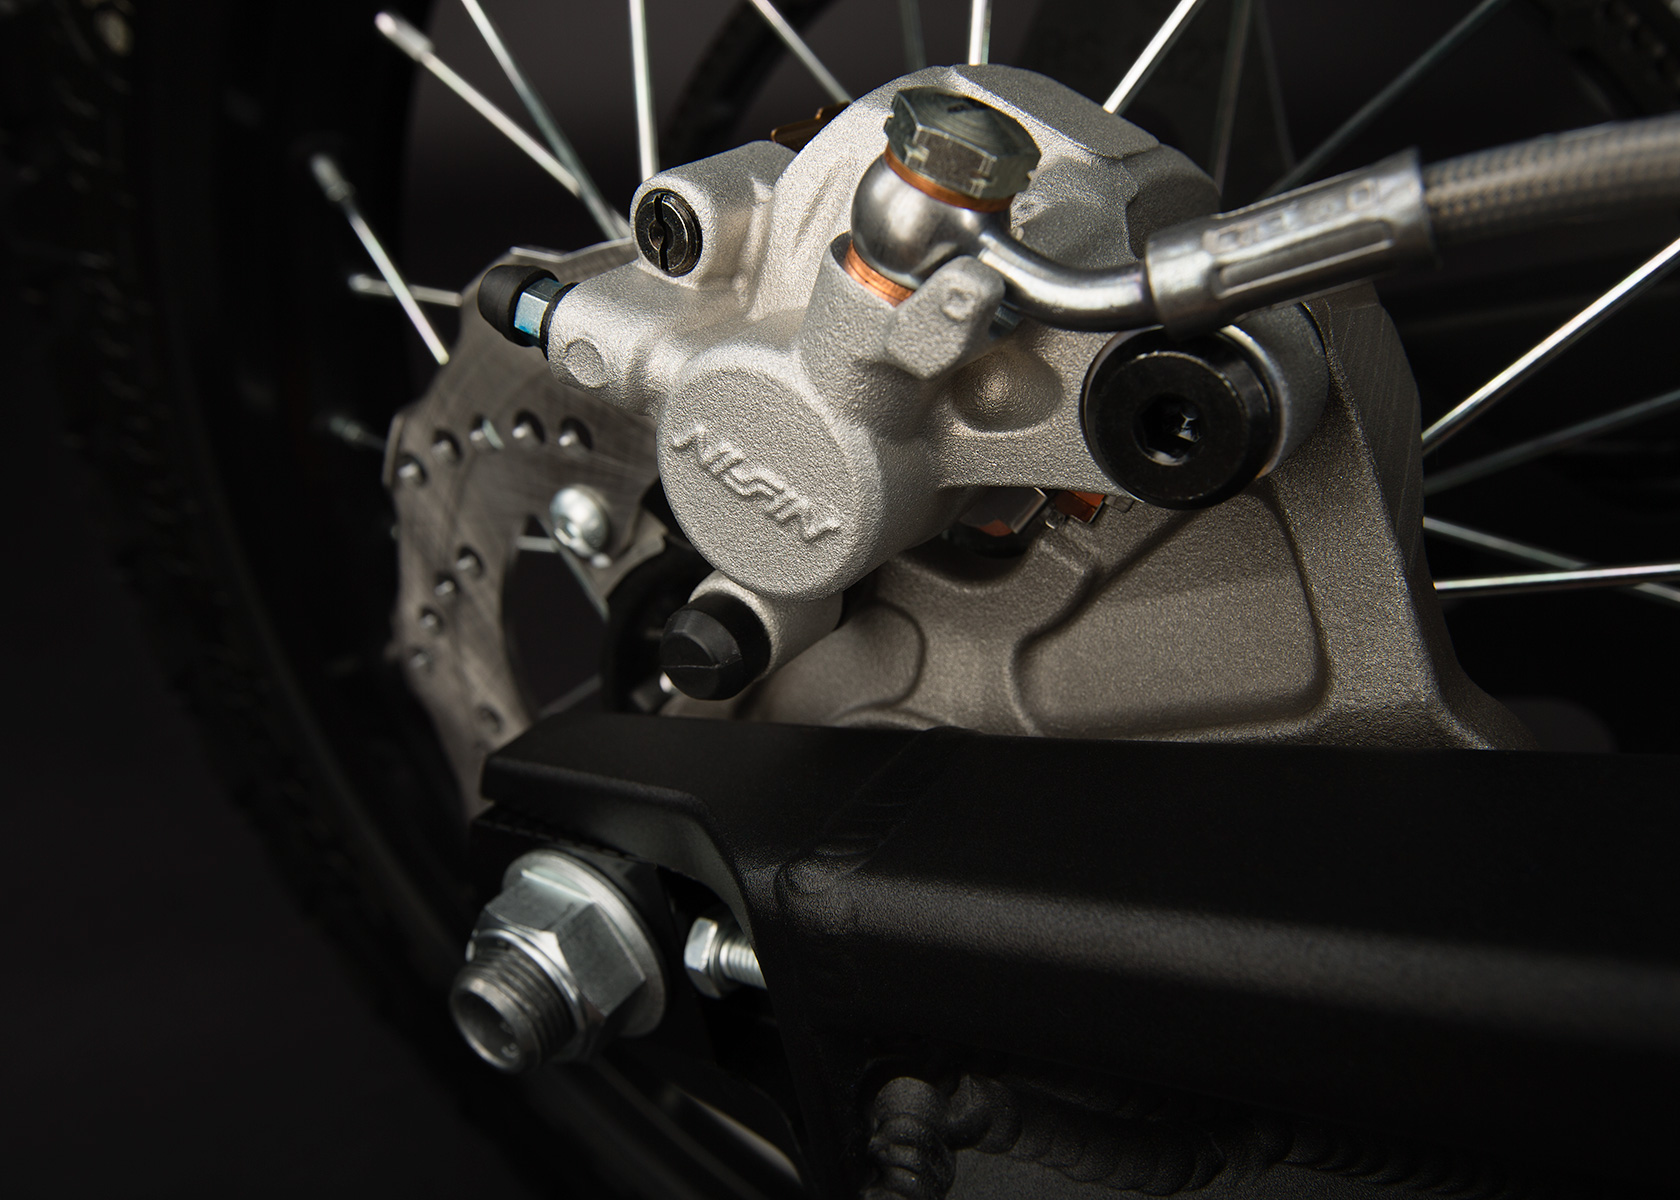 2013 Zero FX Electric Motorcycle: Rear Brake